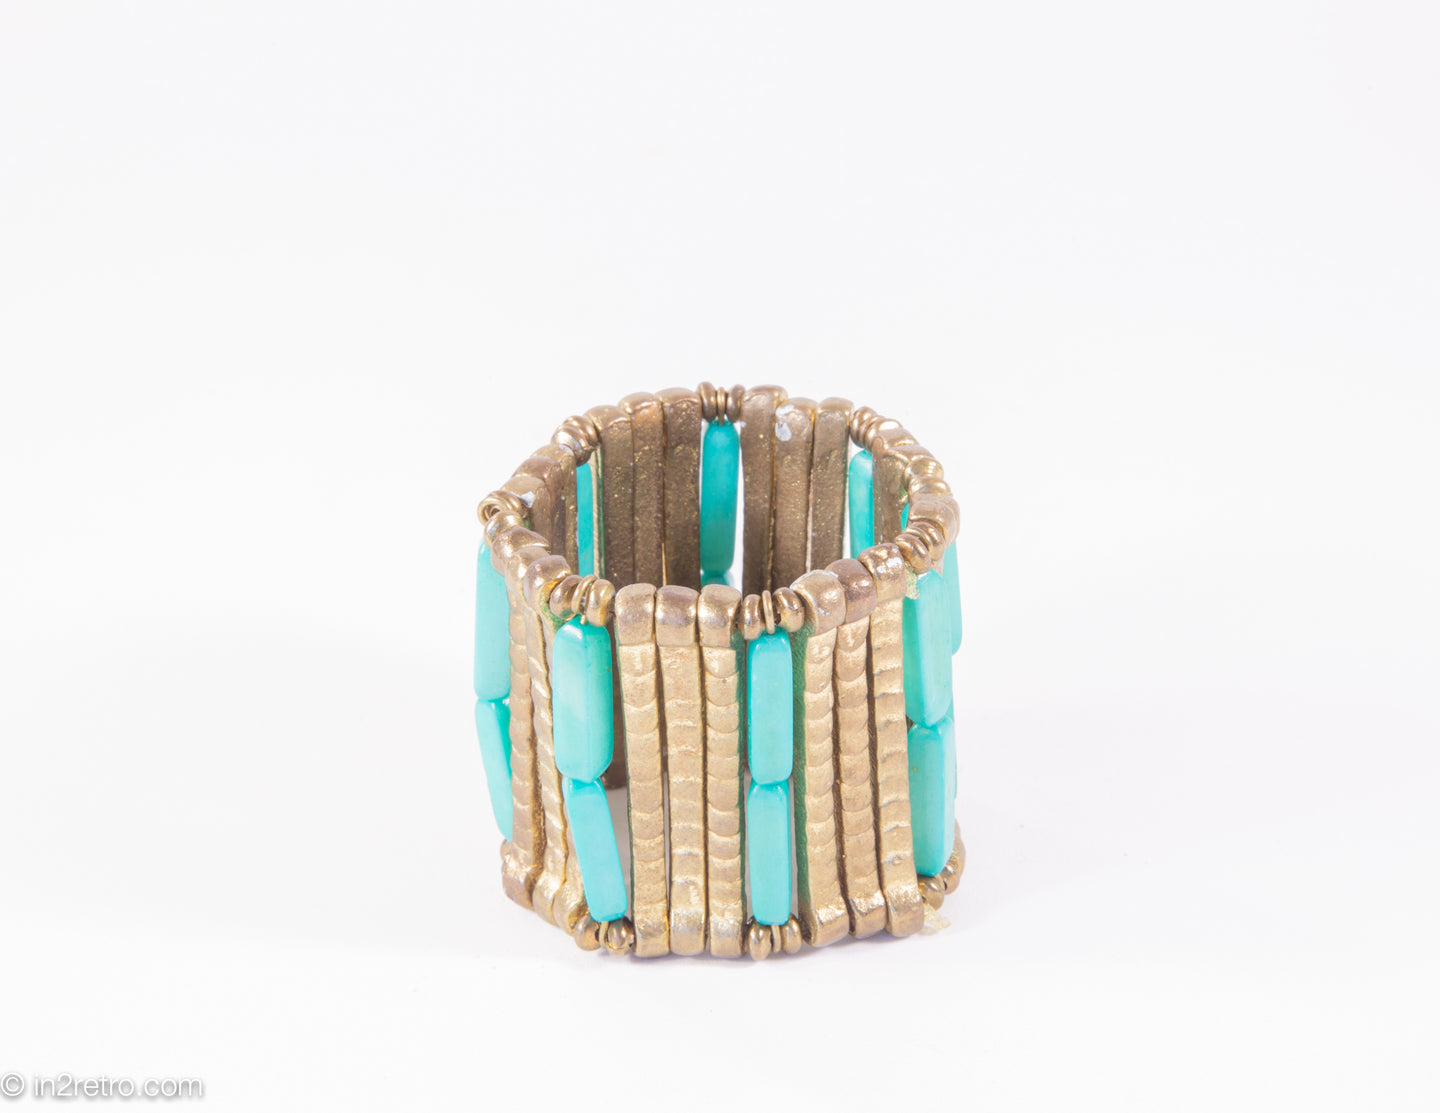 VINTAGE BURNISHED METAL AND FAUX TURQUOISE BEADS STRETCH BRACELET